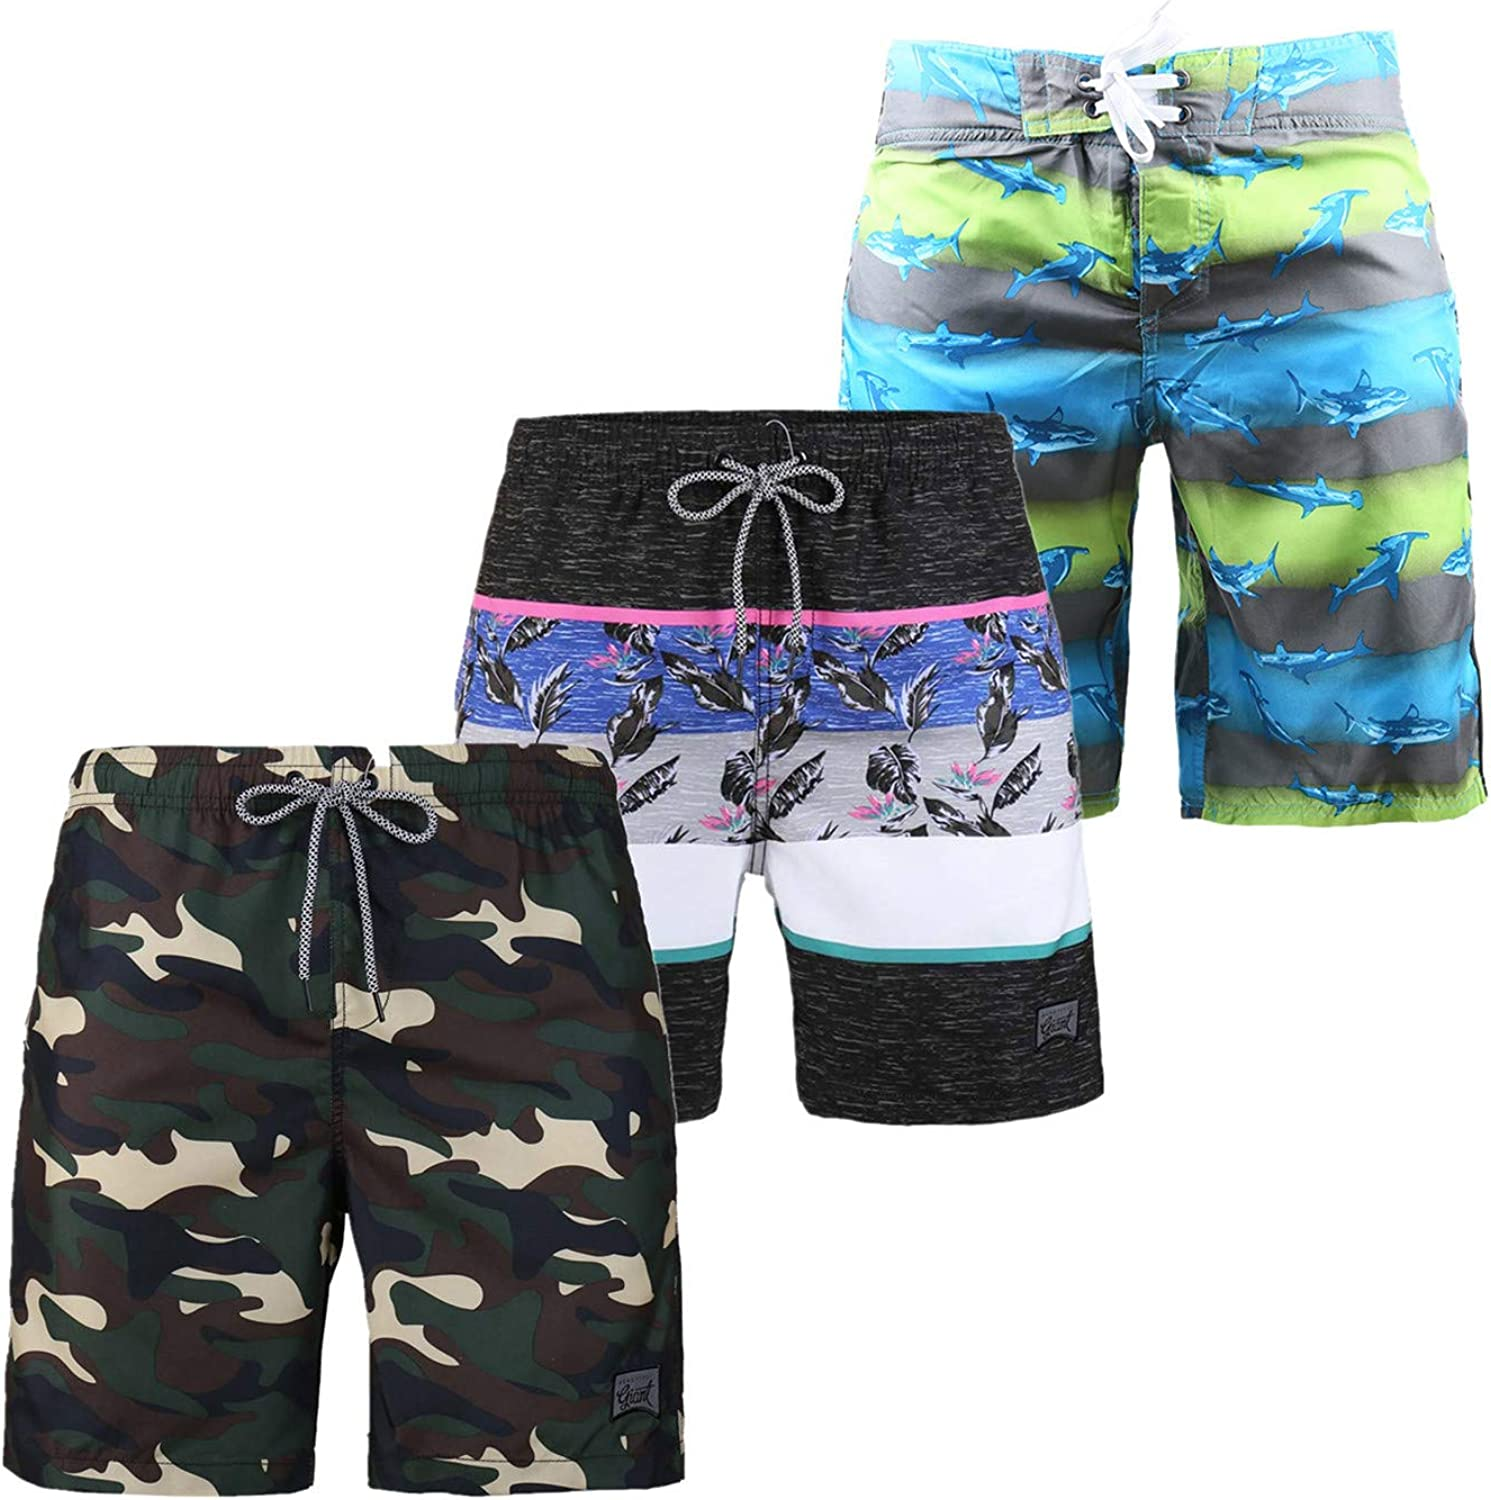 IvanTom 3 Pack Men's Swim Trunk Casu Lined Mesh Beach Wrestling Same day shipping At the price of surprise